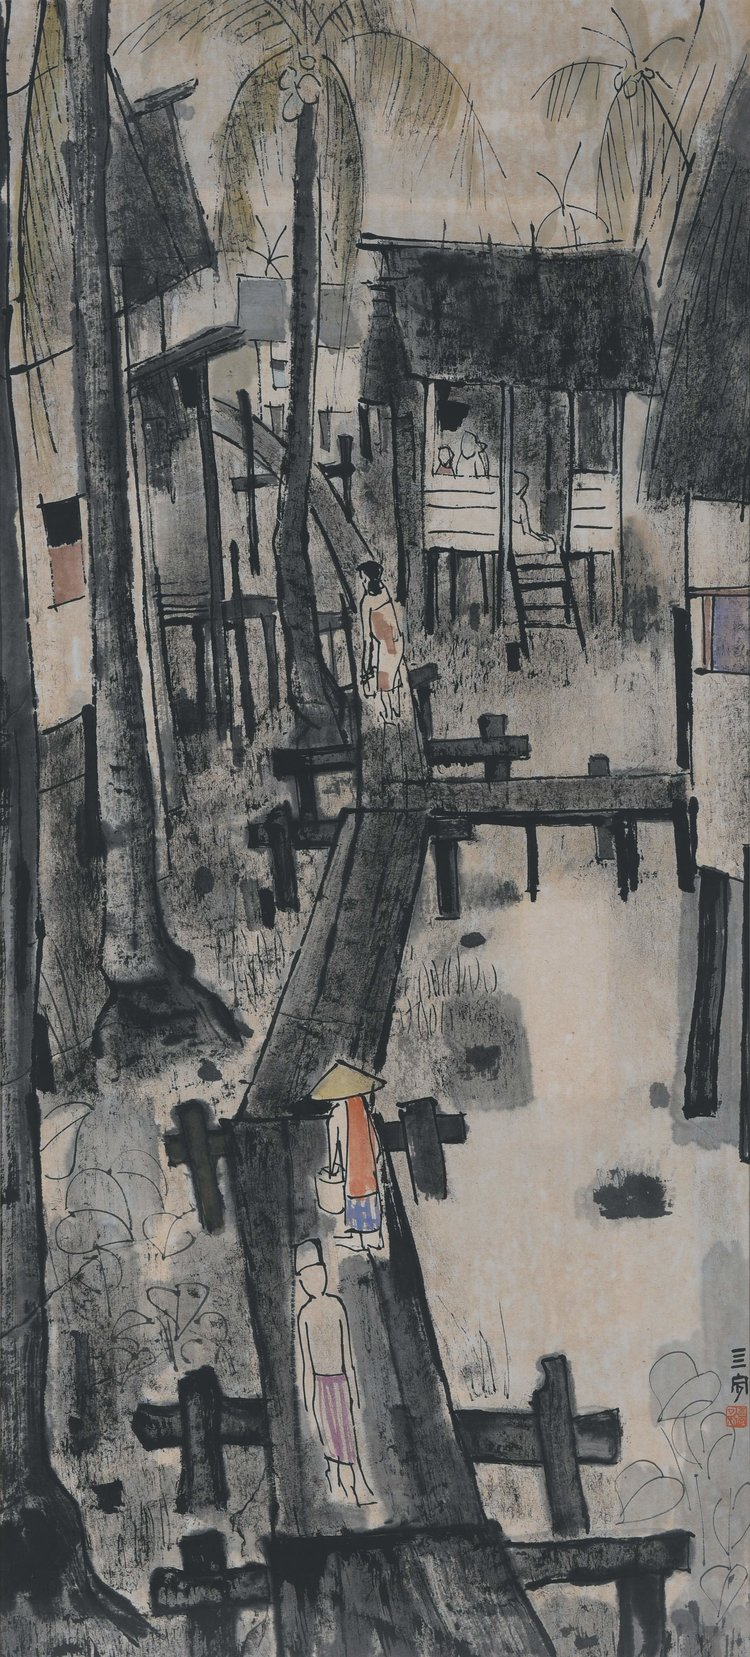 Cheong Soo Pieng, Untitled (Malay Village), ink and colour on paper, 94.5 x 43 cm